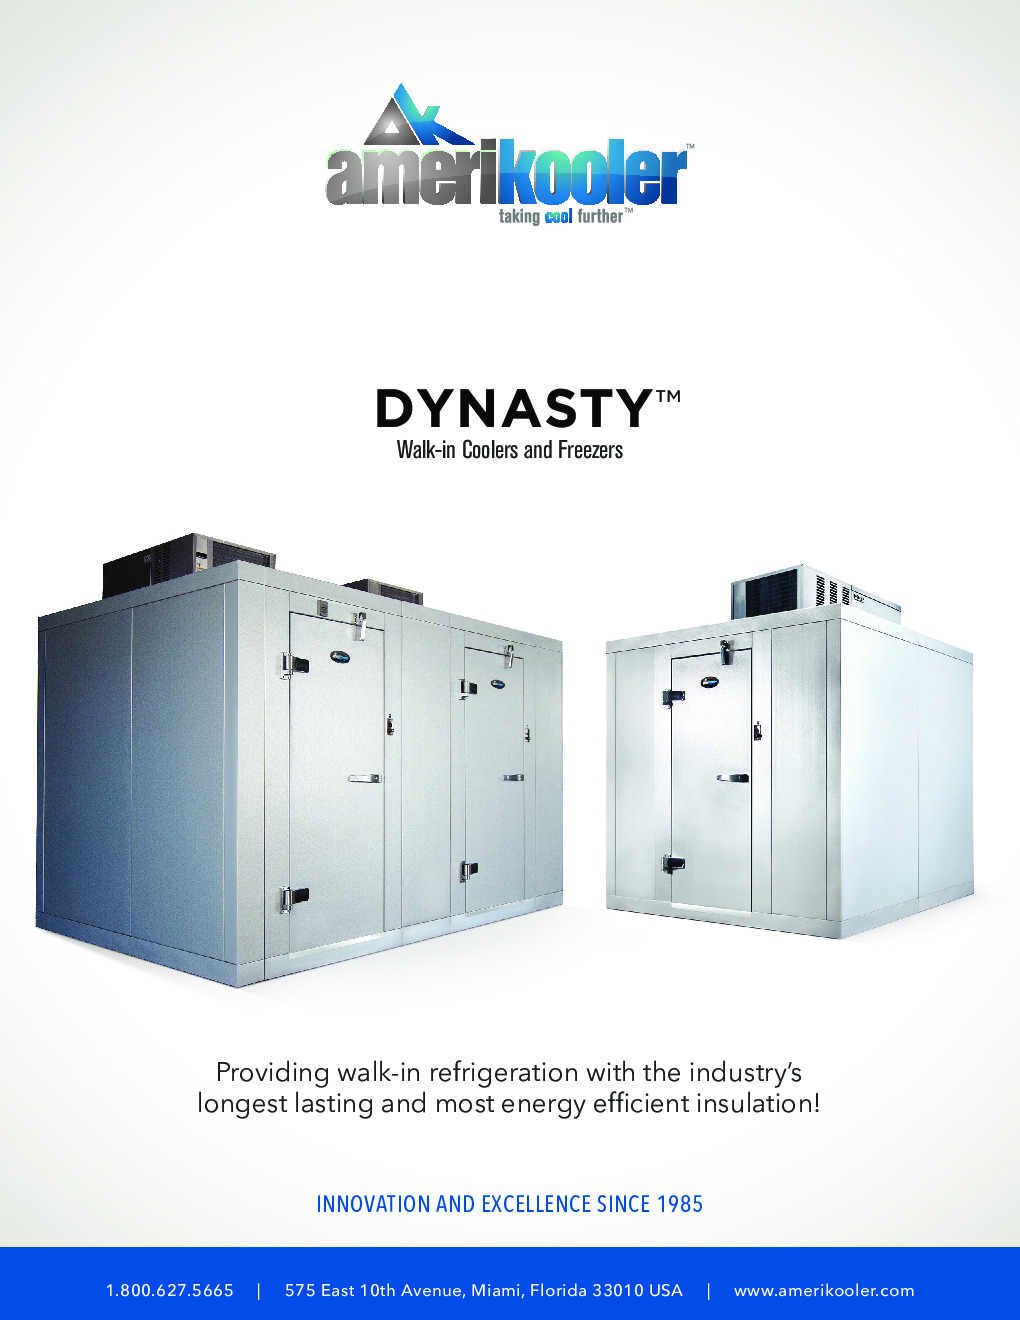 AmeriKooler DW091377F-4/9-RM 9' X 13' Walk-In Cooler, 9' L Cooler with Floor and 4' L Freezer, Remote